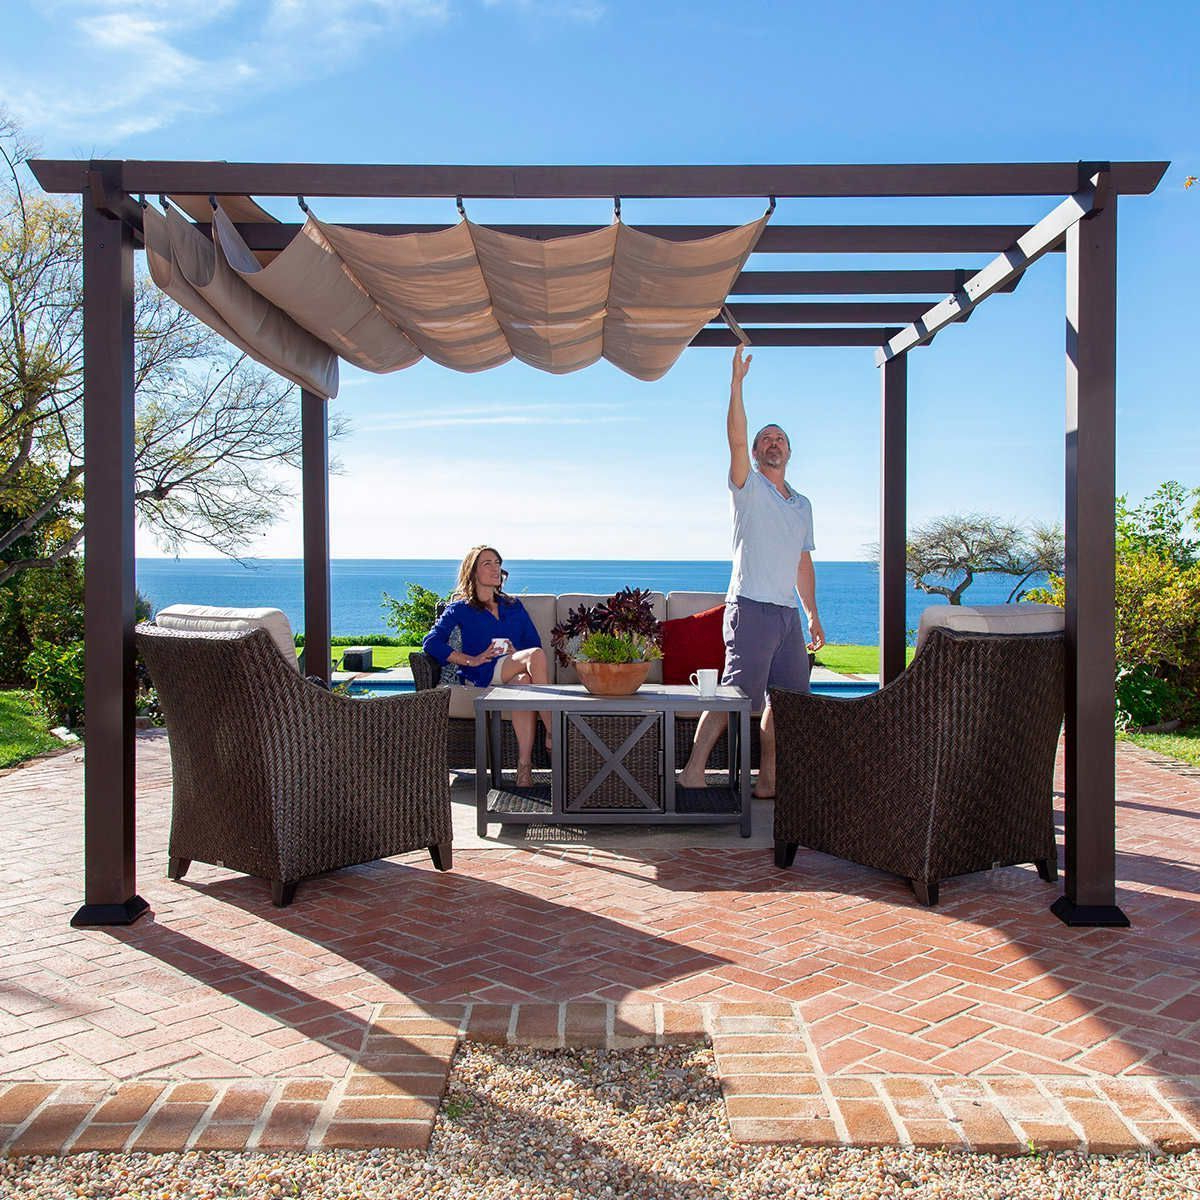 A4 Ft Cedar Pergola Swings Within Most Up To Date Pin About Pergola Curtains, Aluminum Pergola And Pergola (View 5 of 25)